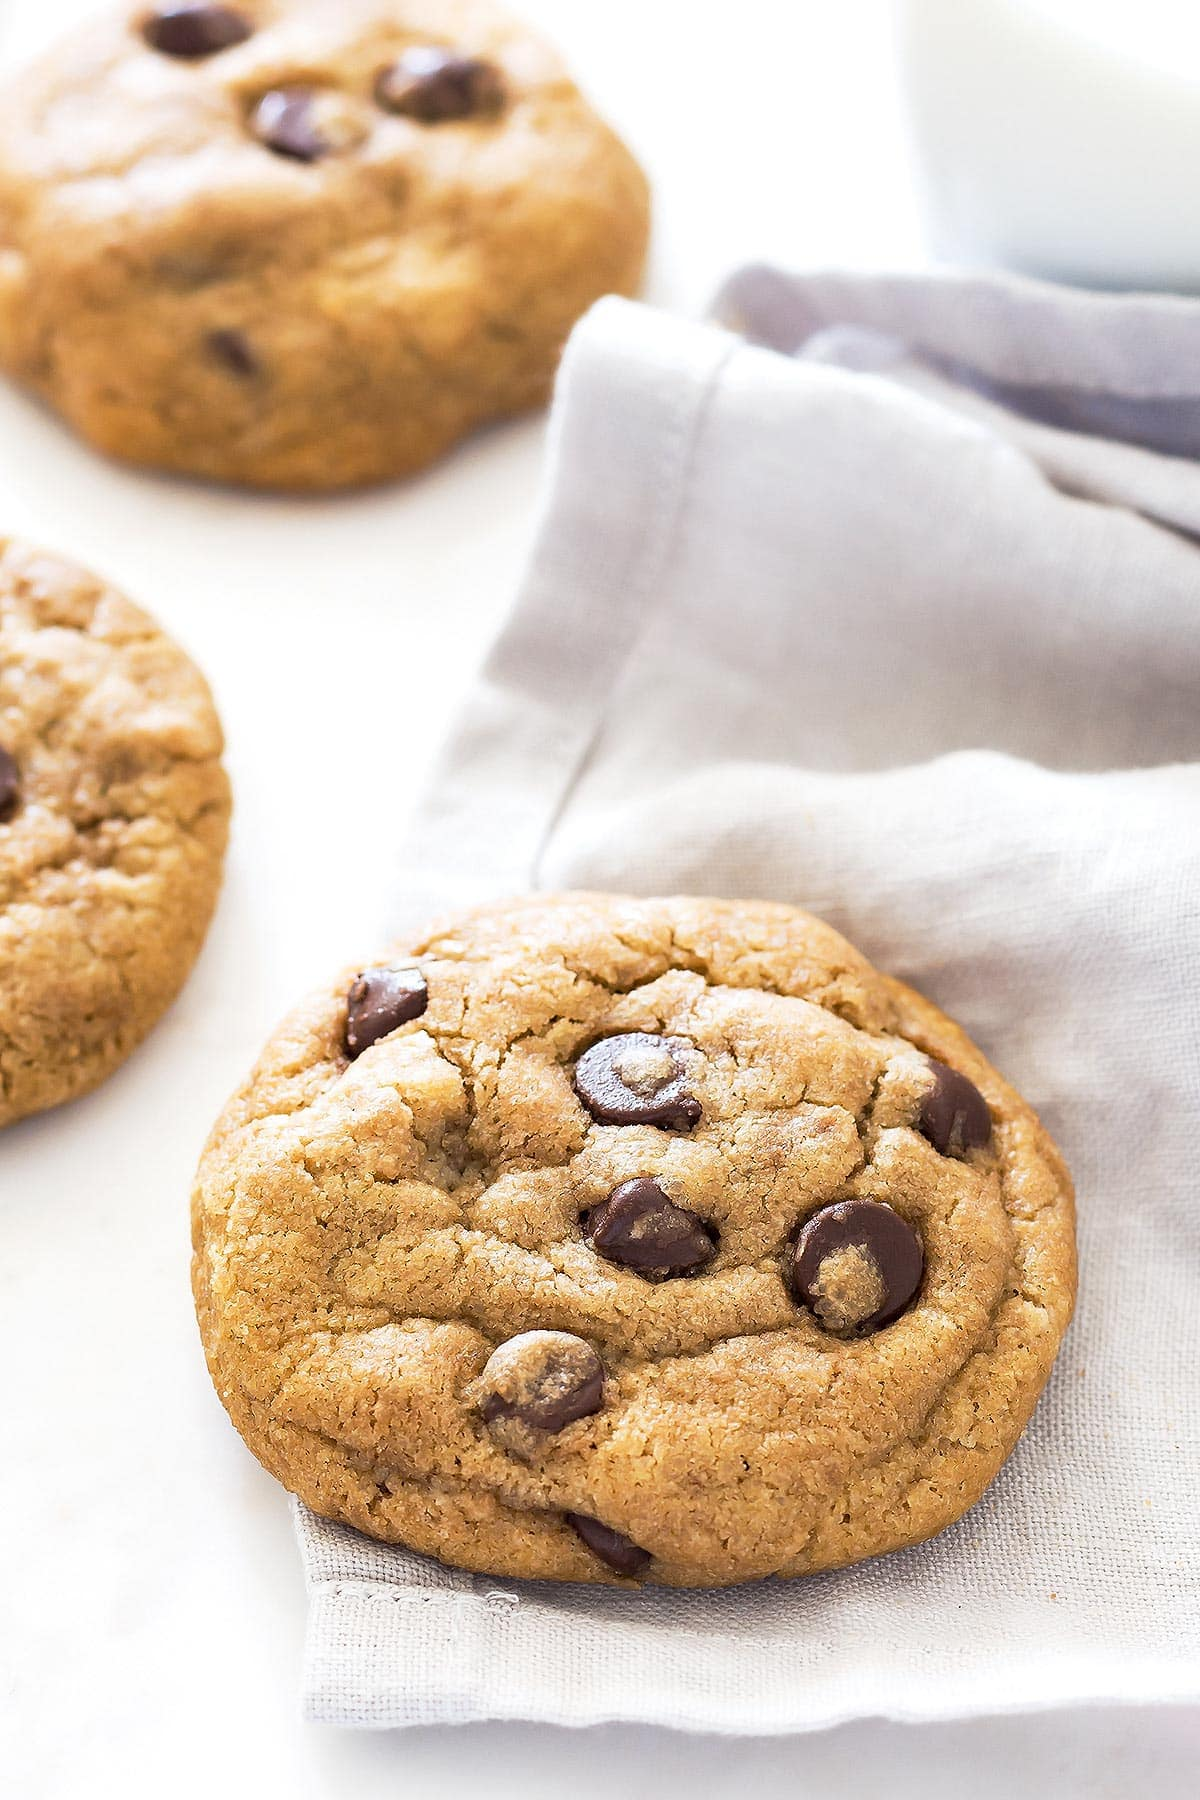 Close up of thick chocolate chip cookie